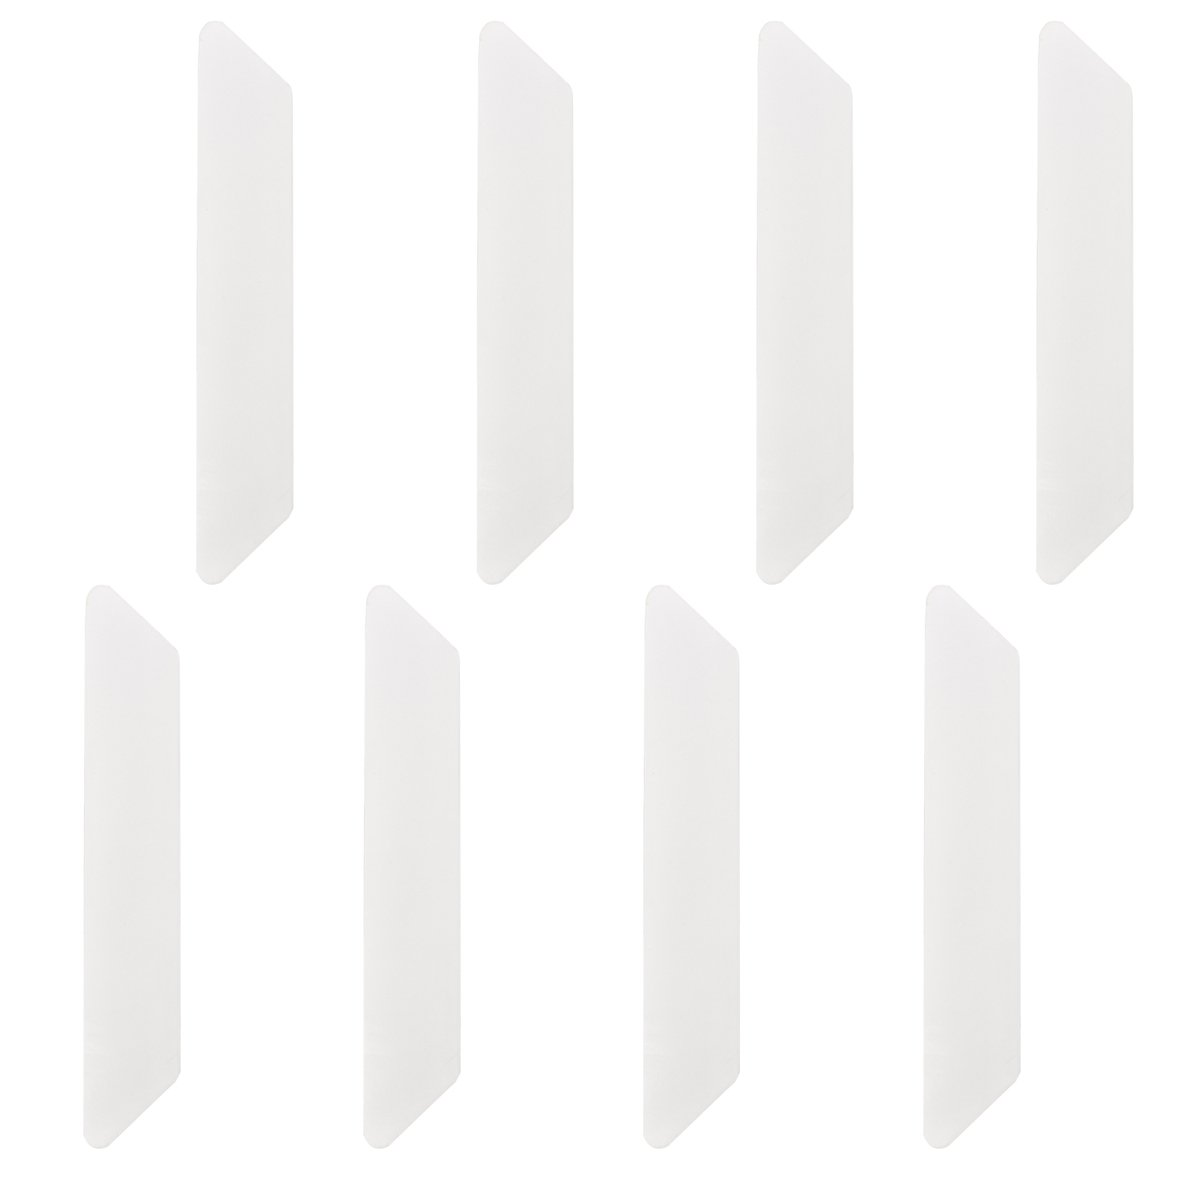 SANSUM Rug Gripper 8pcs White Anti Curling Rug Gripper Non Slip Rug Pad for Rugs Straight Carpet Gripper for Corners and Edges Small